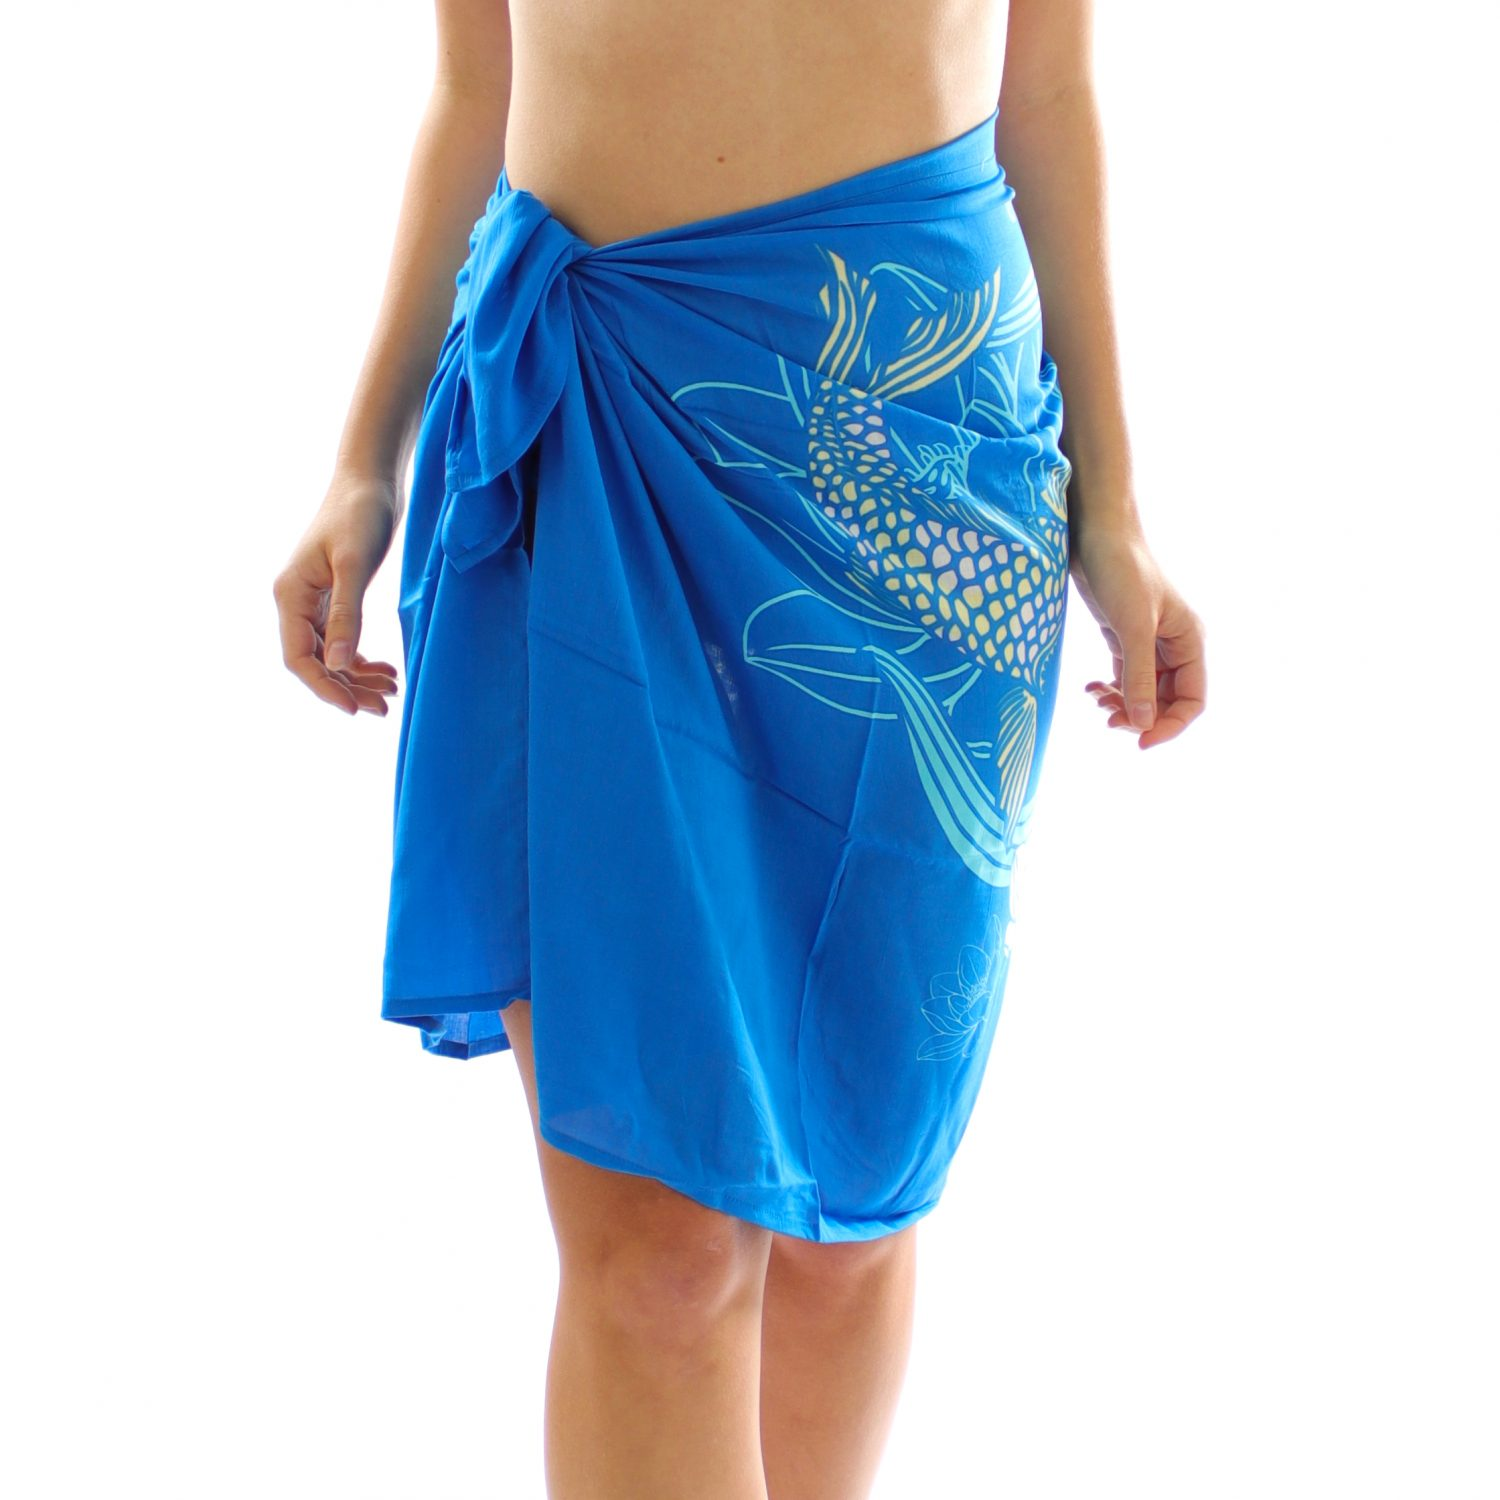 IMG_8076_Sarong_Canga_Pareo_Strandtuch_Damen_Way back to you_Sarong_Canga_Pareo_Strandtuch_Damen_Zoom_Way back to you